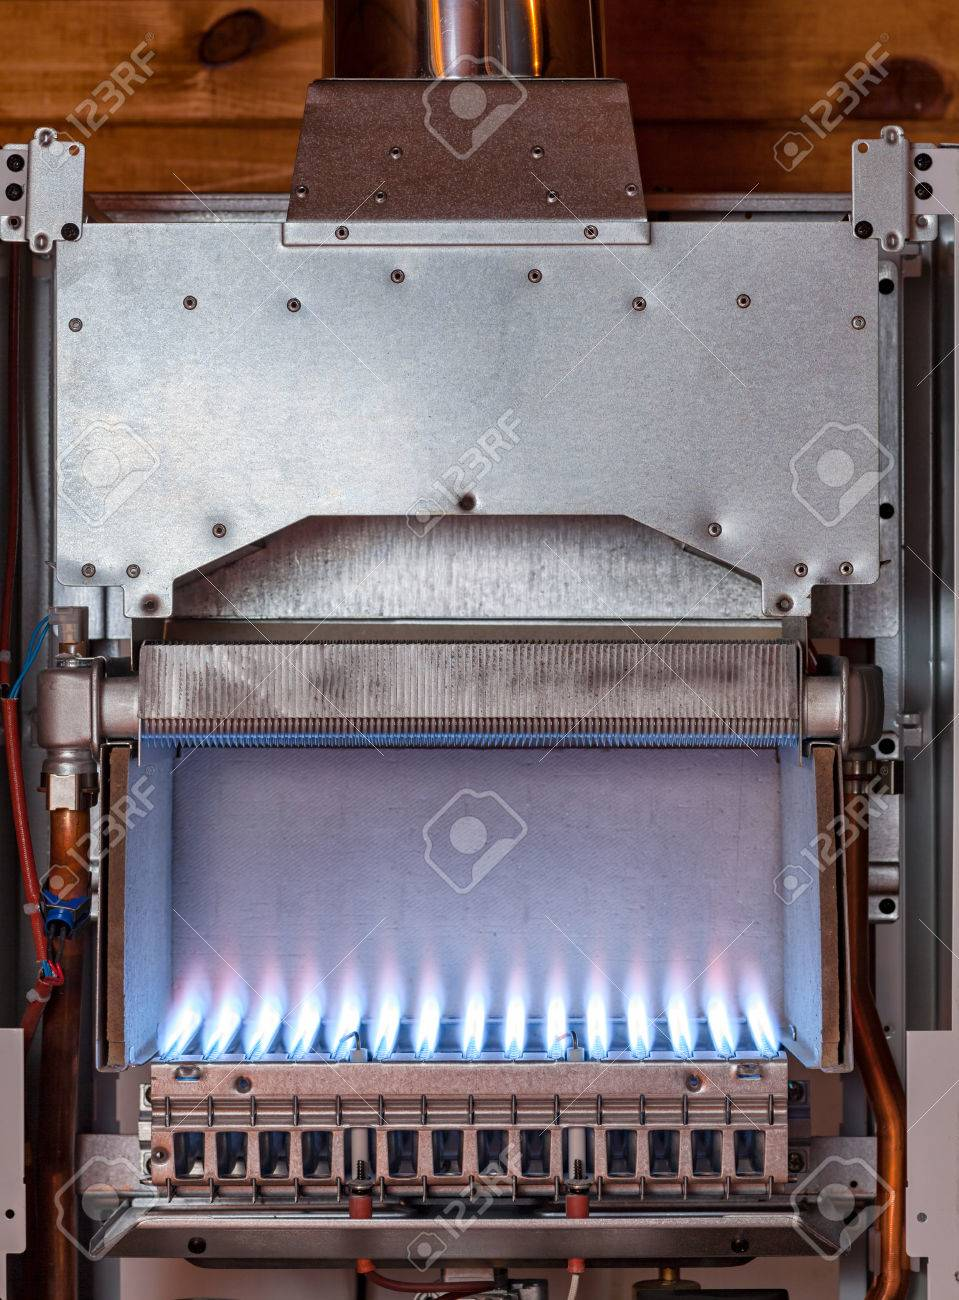 Gas Flame Inside Of The Gas Boiler Furnace Stock Photo, Picture And ...